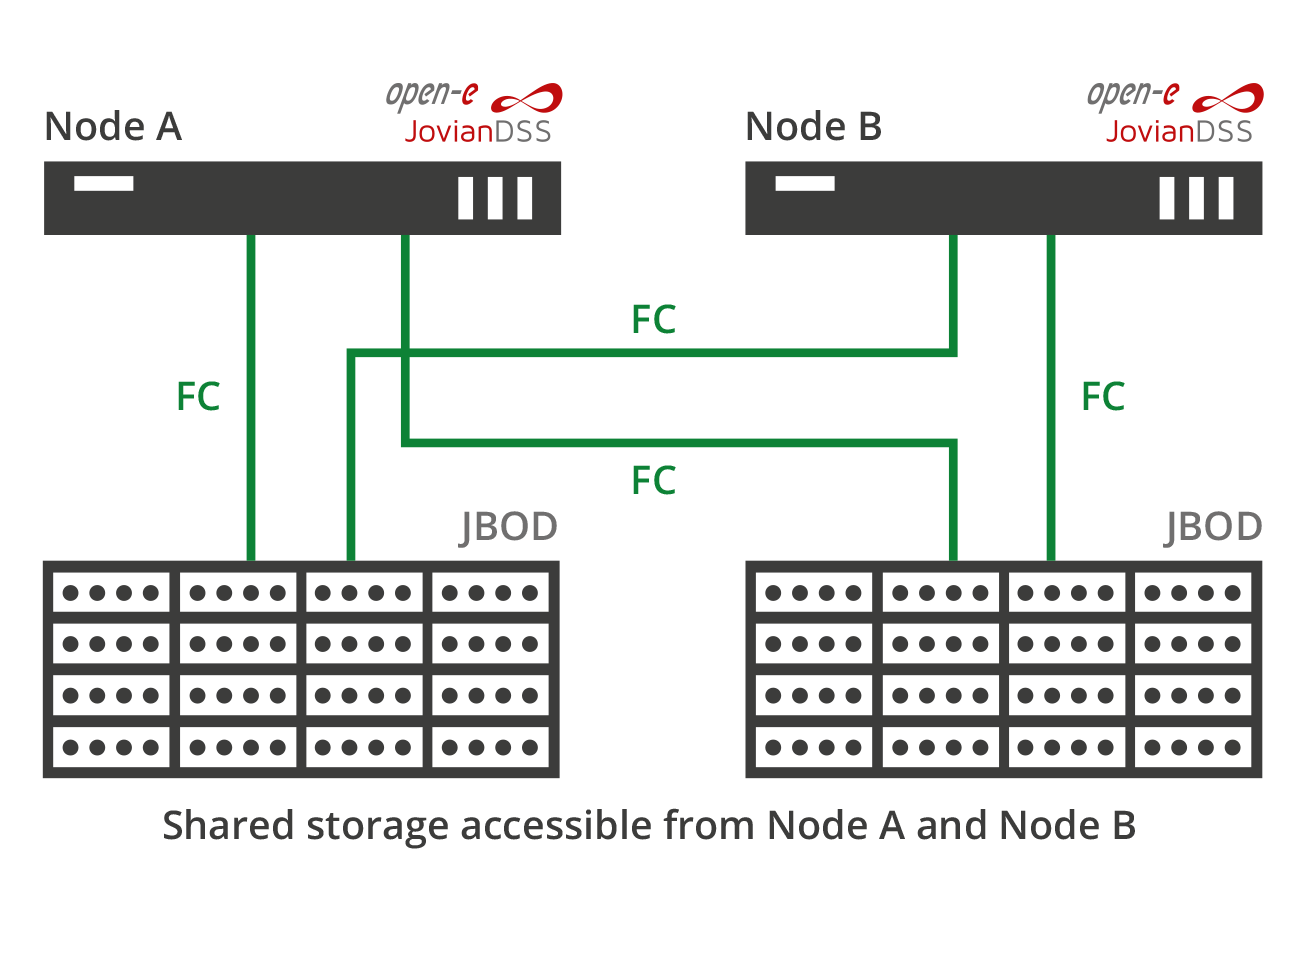 Standard High Availability FC connected dual internal storage